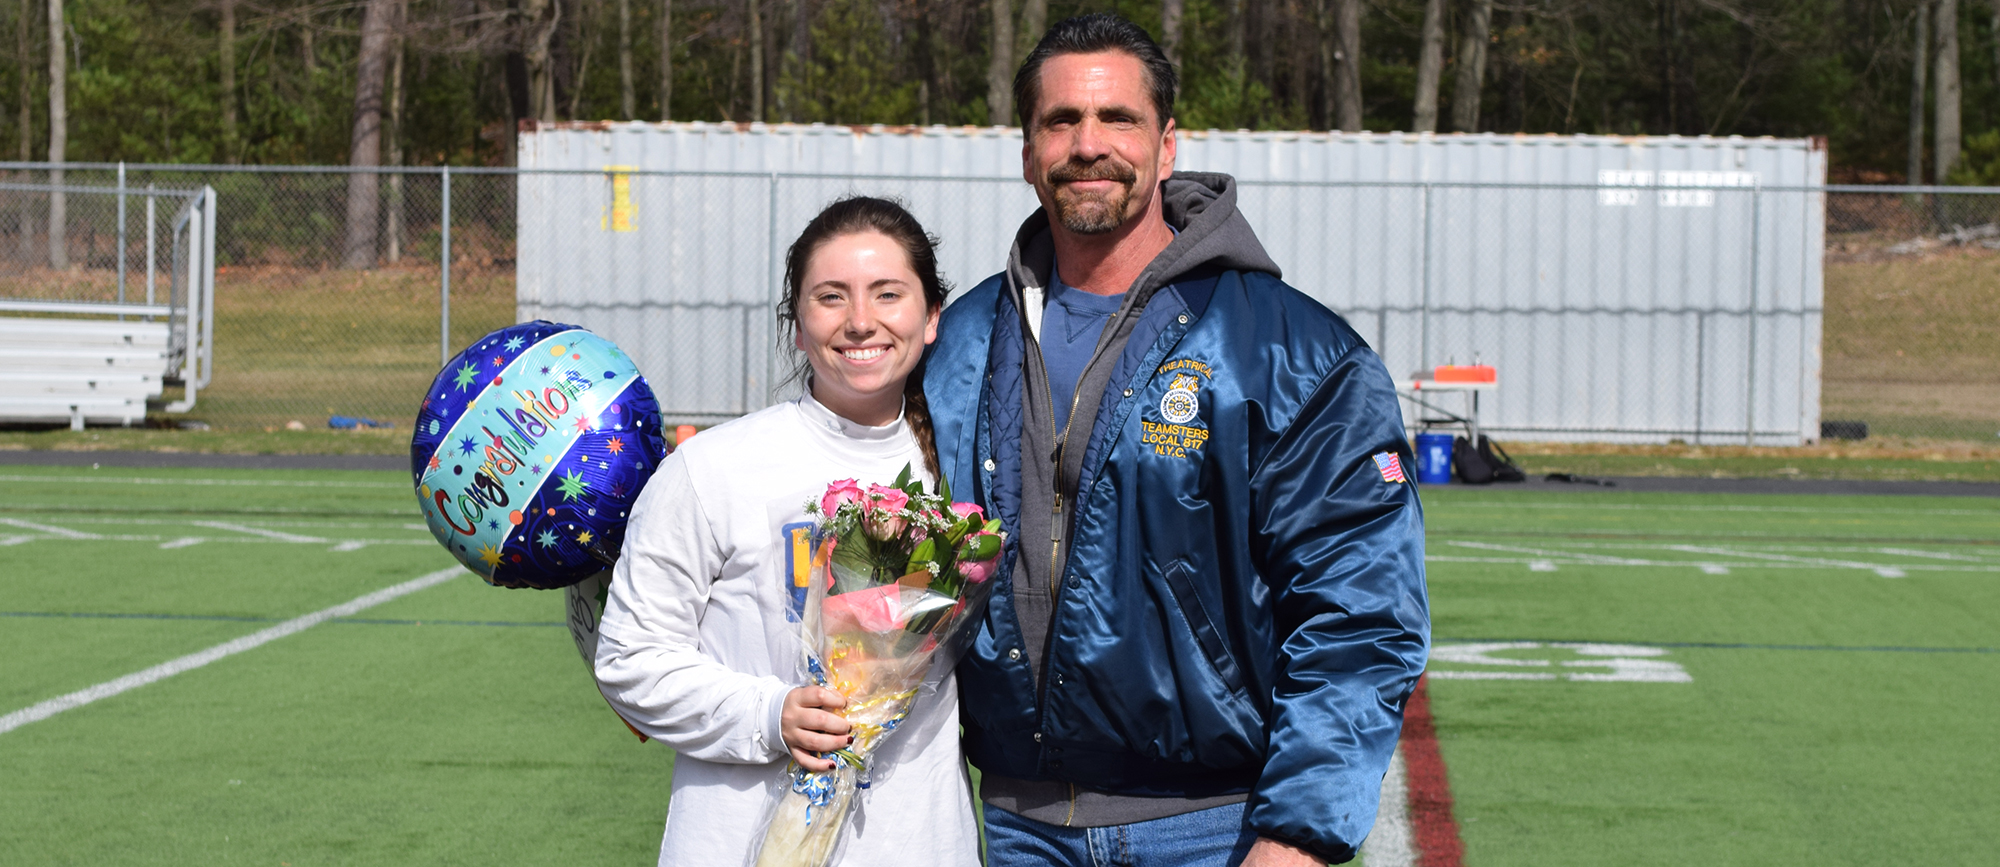 Senior goalie Shannon McFadden was honored prior to the start of Western New England's 14-13, comeback win over Western Connecticut on Wednesday. (Photo by Rachael Margossian)